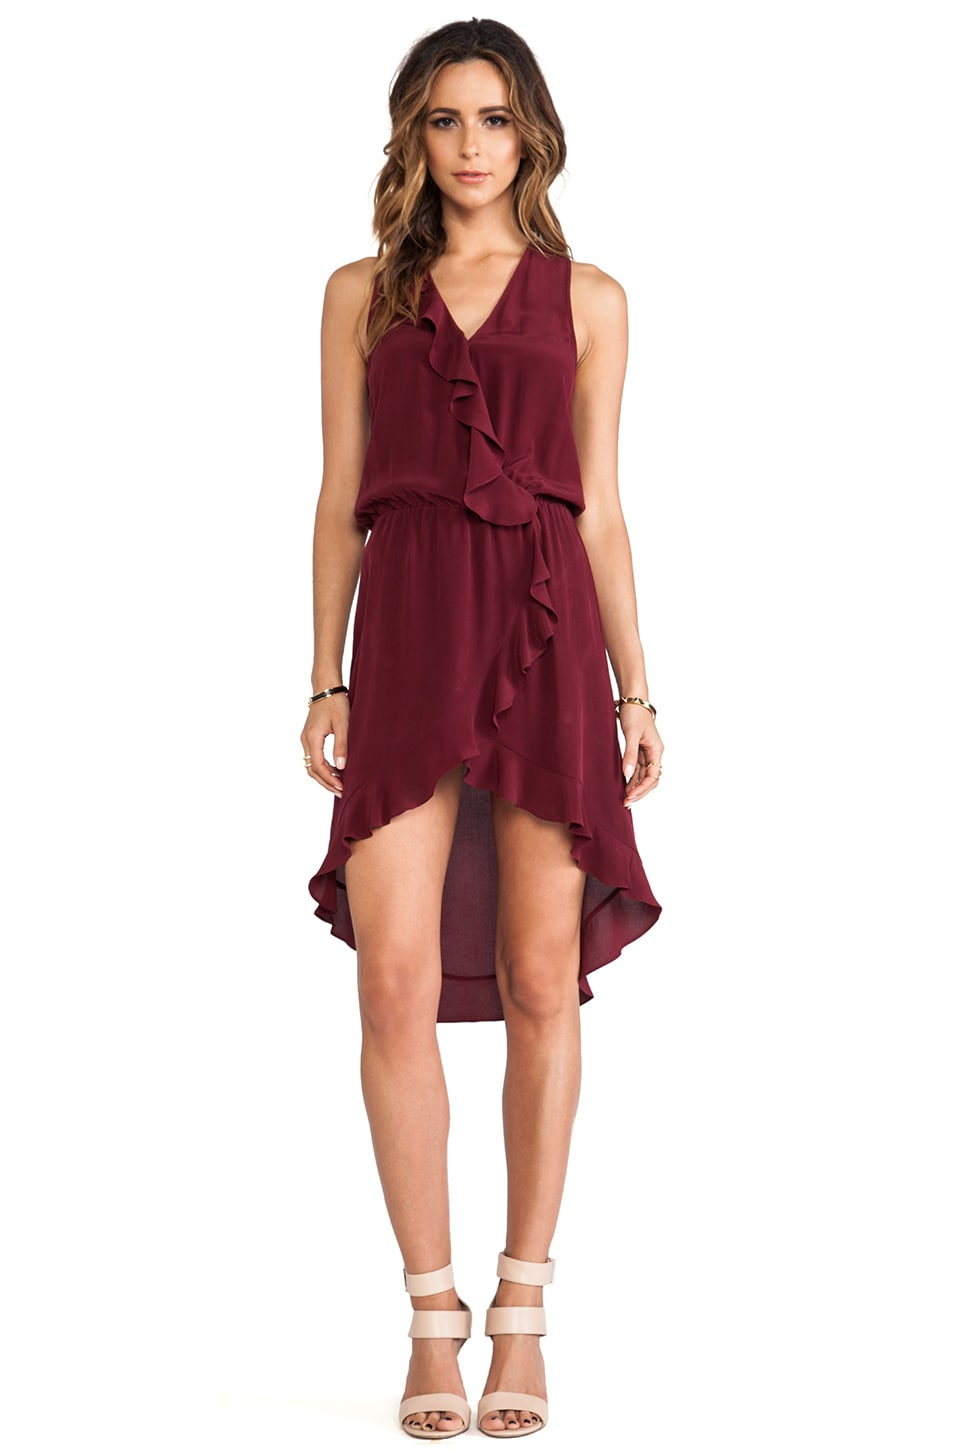 LA Made Ruffled High-Low Midi Dress in Syrah